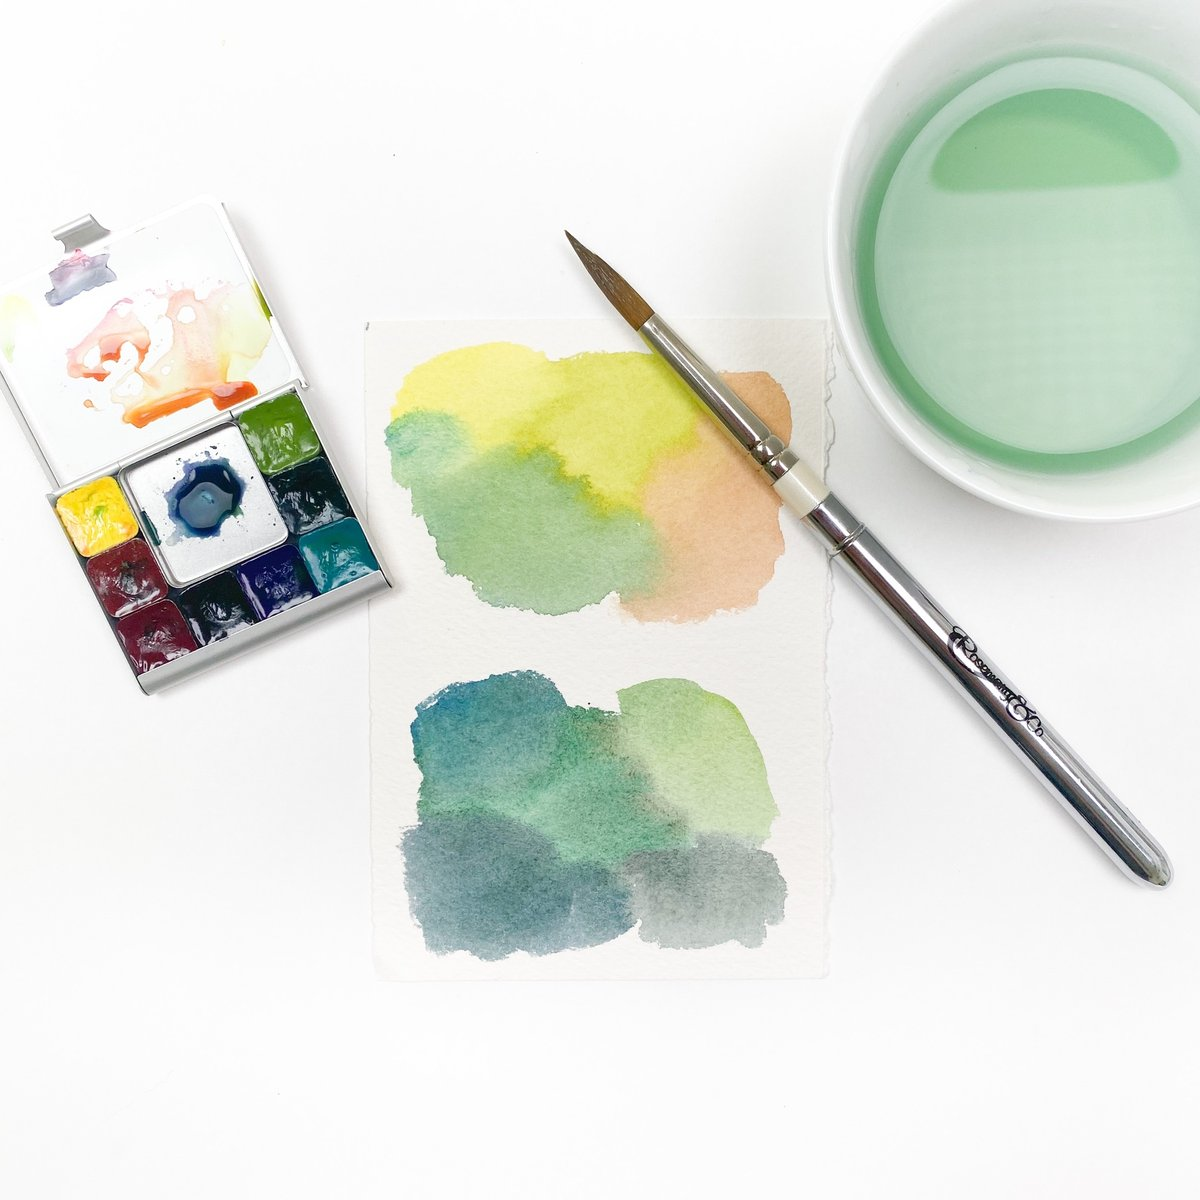 Our pocket palettes create the most #beautiful #color combinations!   Check them out here.. #art #artist #work #painting #drawing #style #gallery #artwork #artgallery #pixelart #artists #artstyle #design